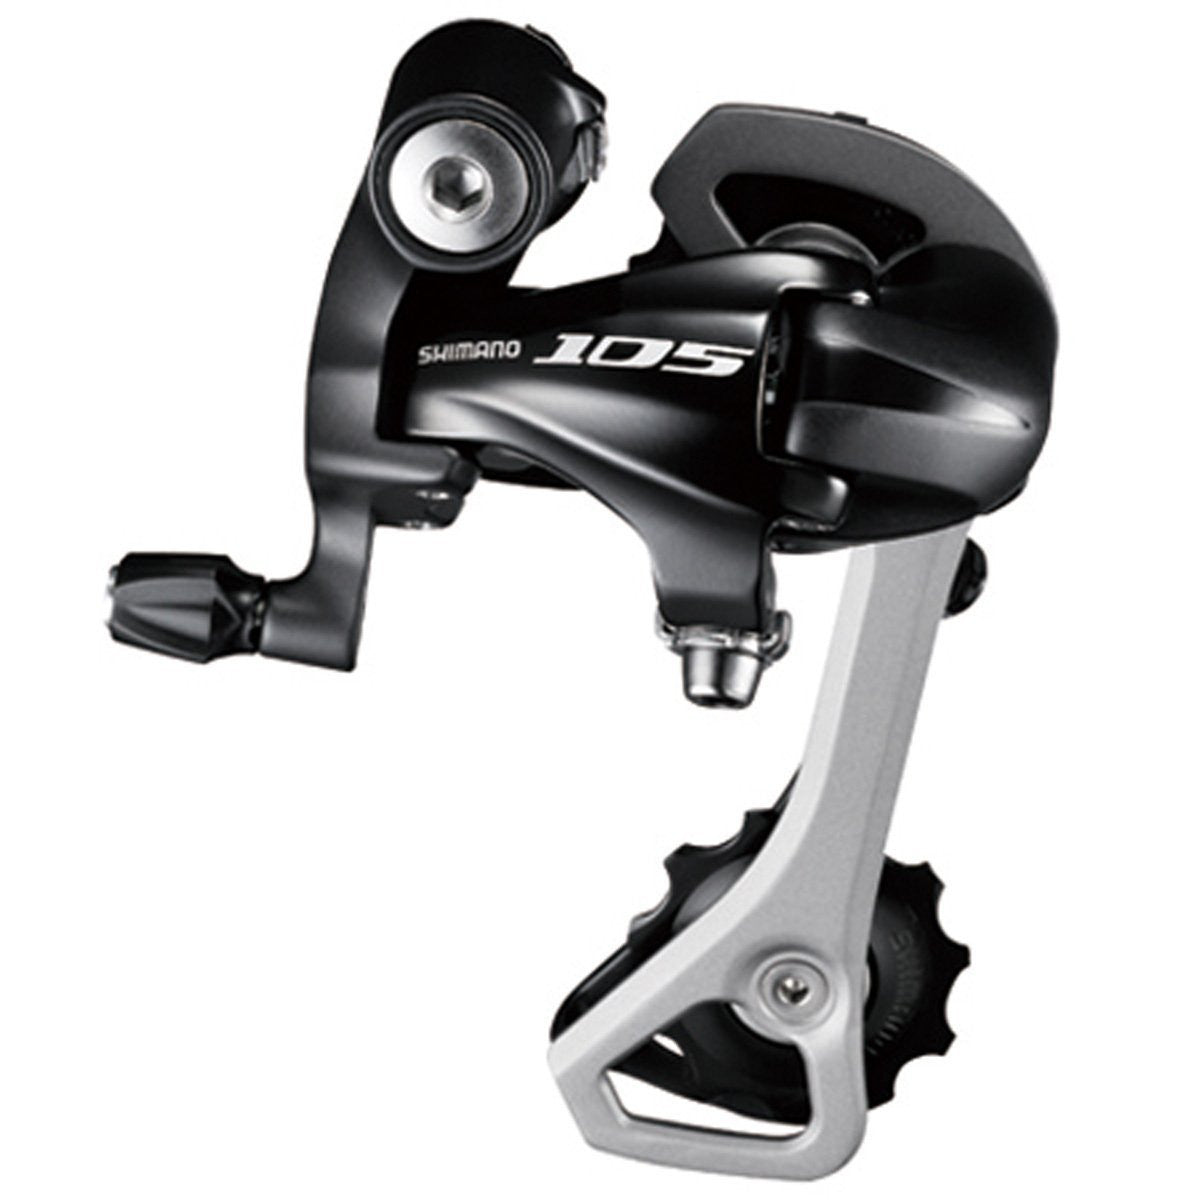 Shimano 105 5701 10 Speed Rear Derailleur - Long Cage - Racer Sportif